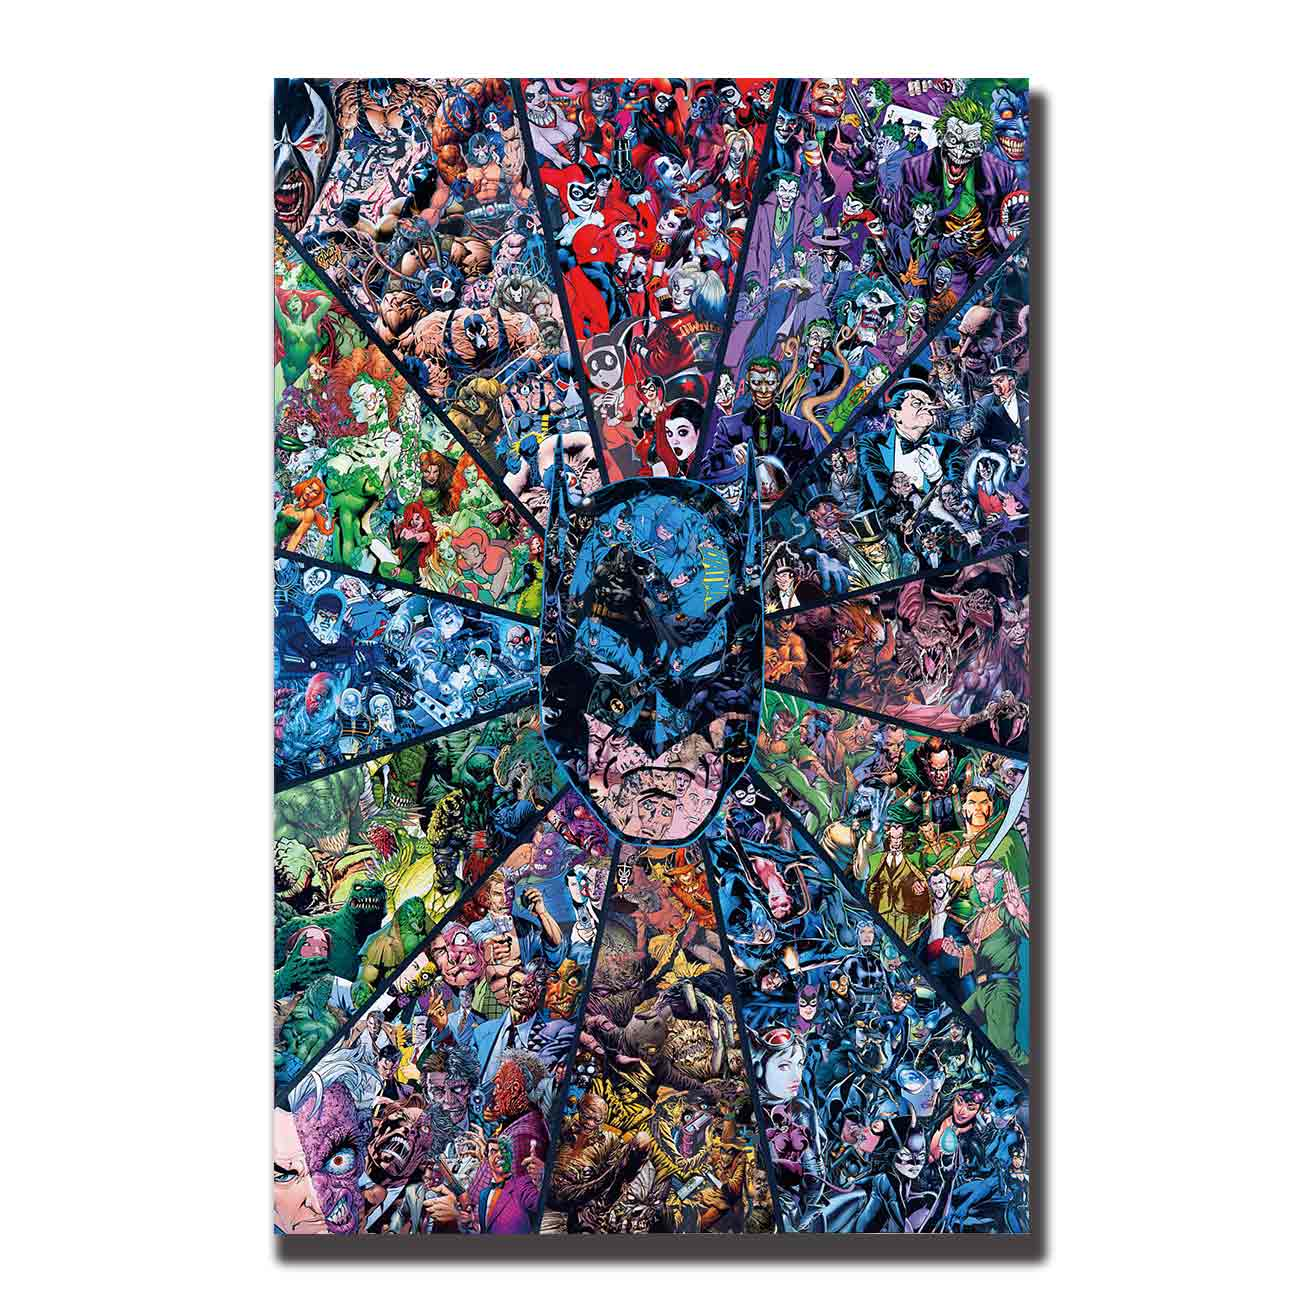 Art Posters Wall Canvas Print Modern painting Batman Hot / Superhero Comic Collage Movie Home Decor 14x21 12x18 24x36 27x40 image